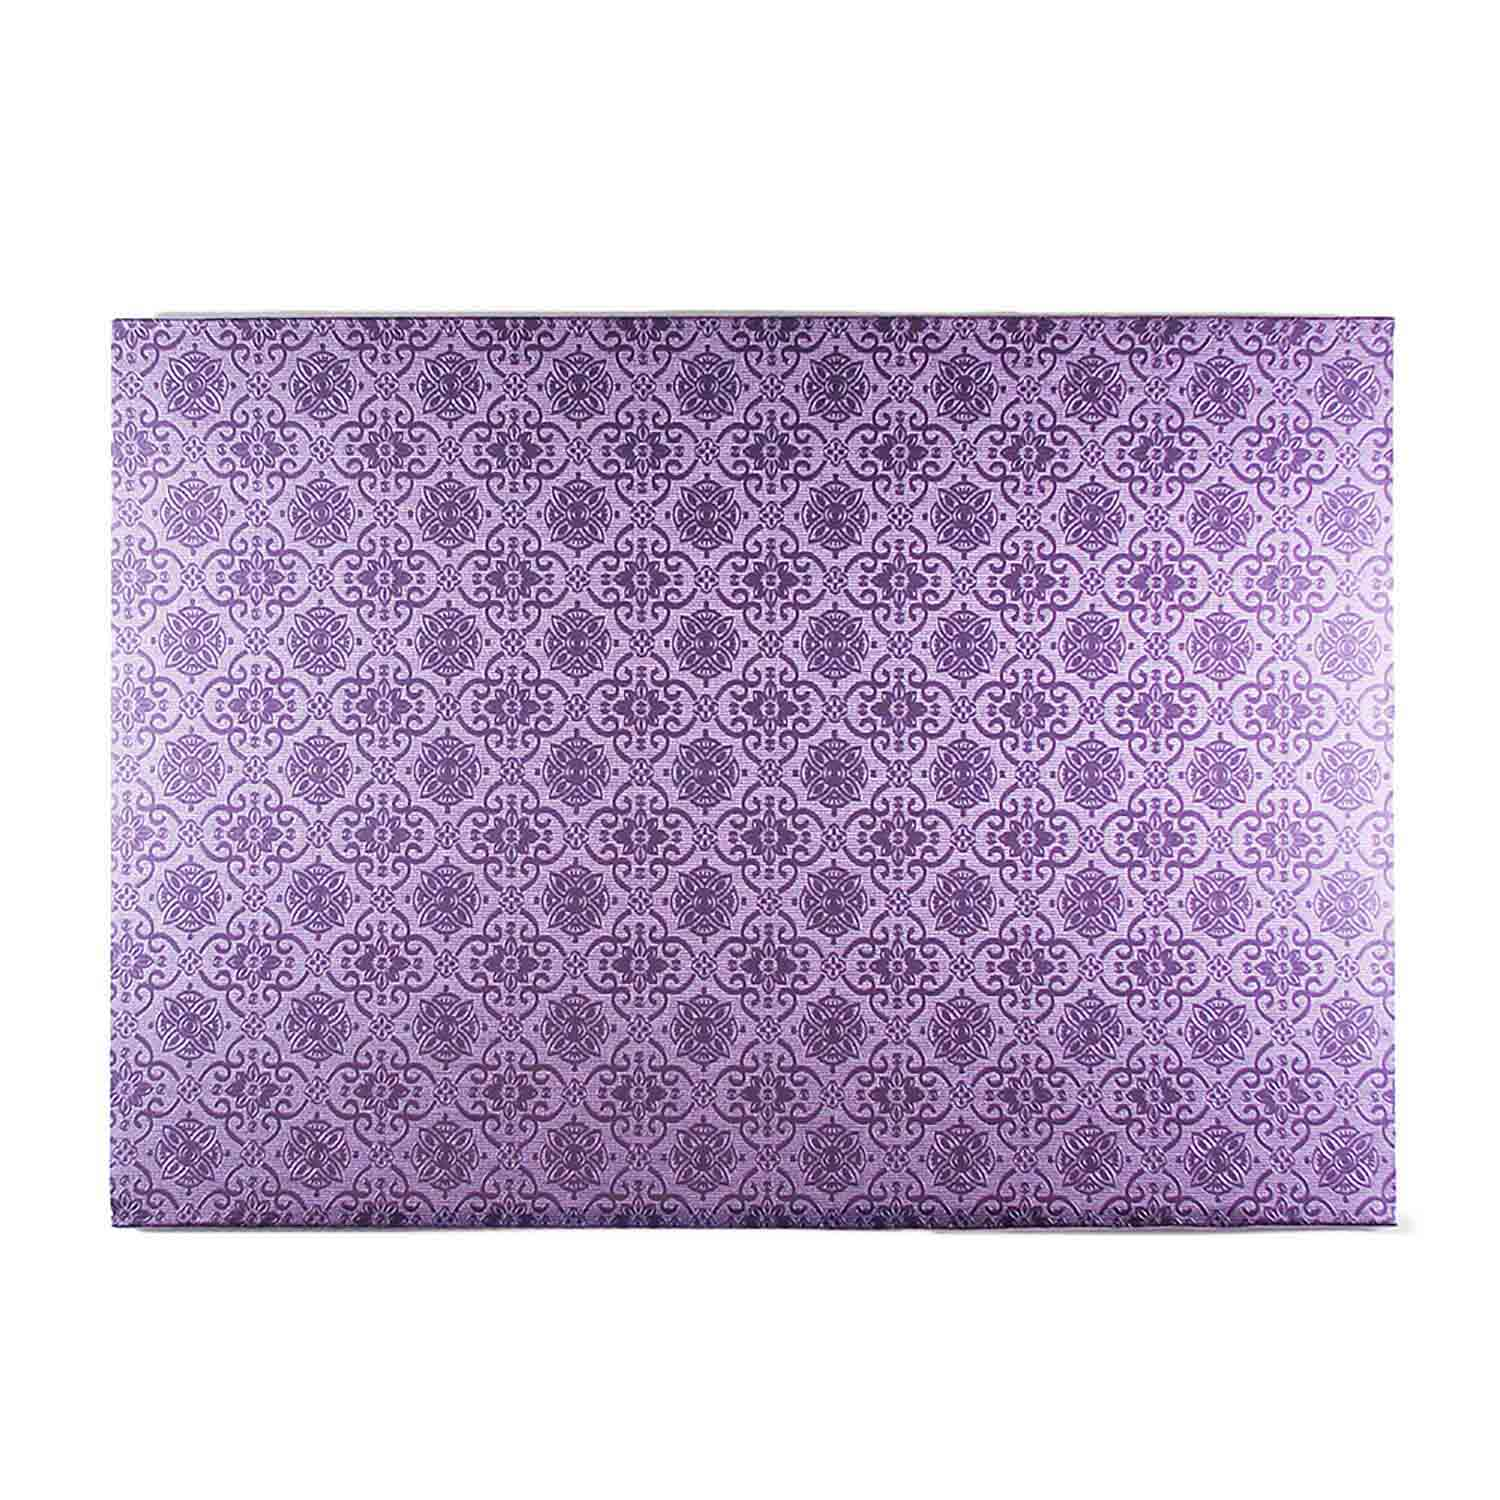 "14"" x 19"" Rectangle Lilac Foil Half Sheet Cake Drum"